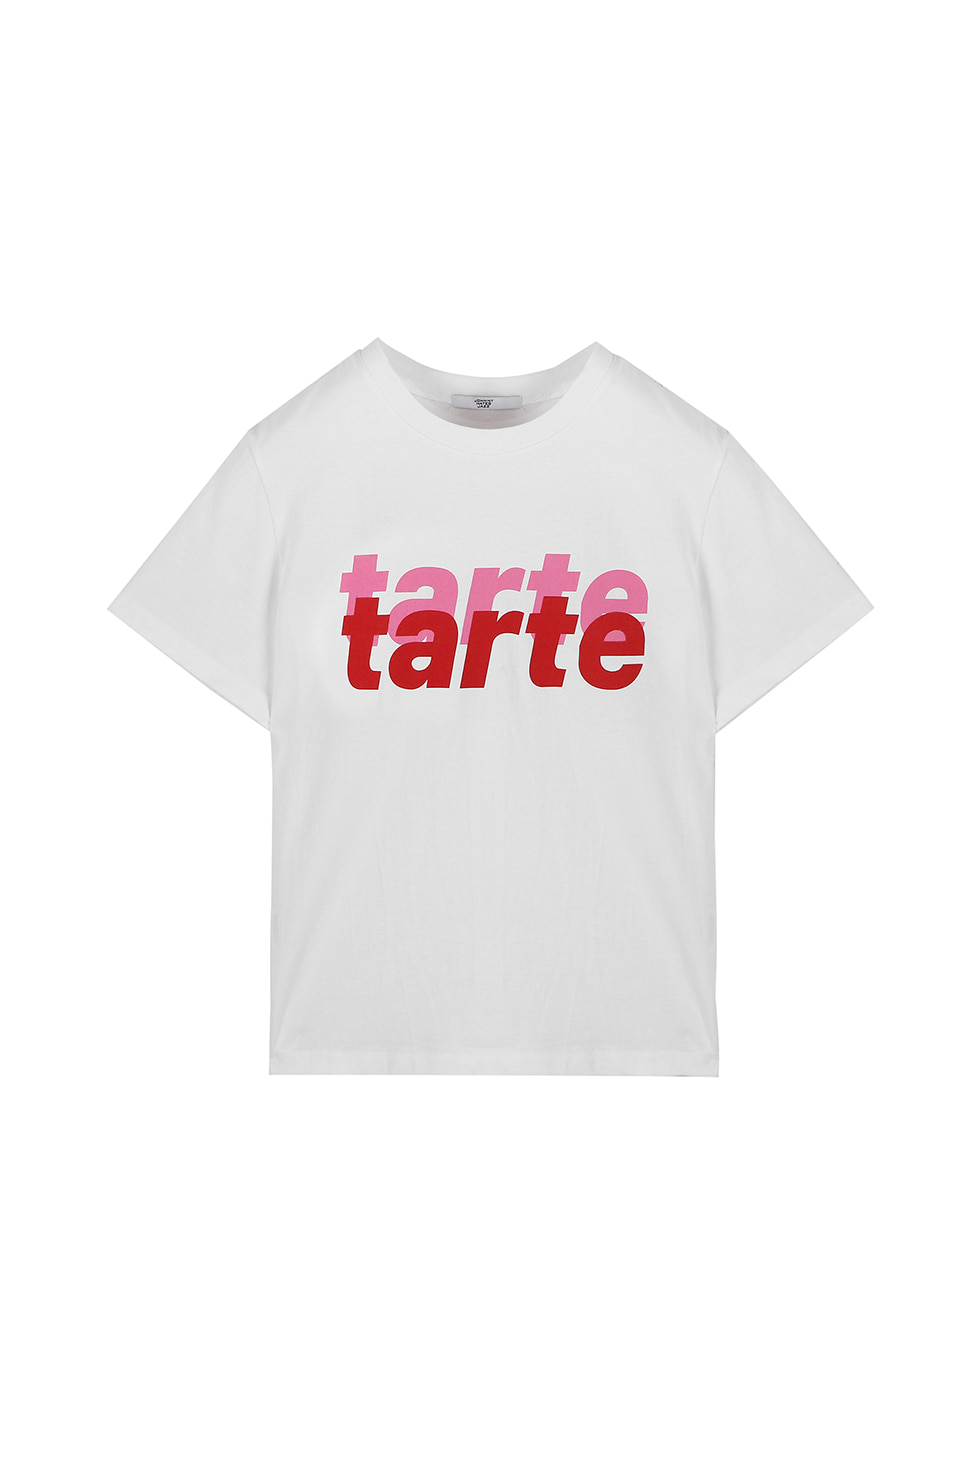 'TARTE' T-SHIRTS - WHITE